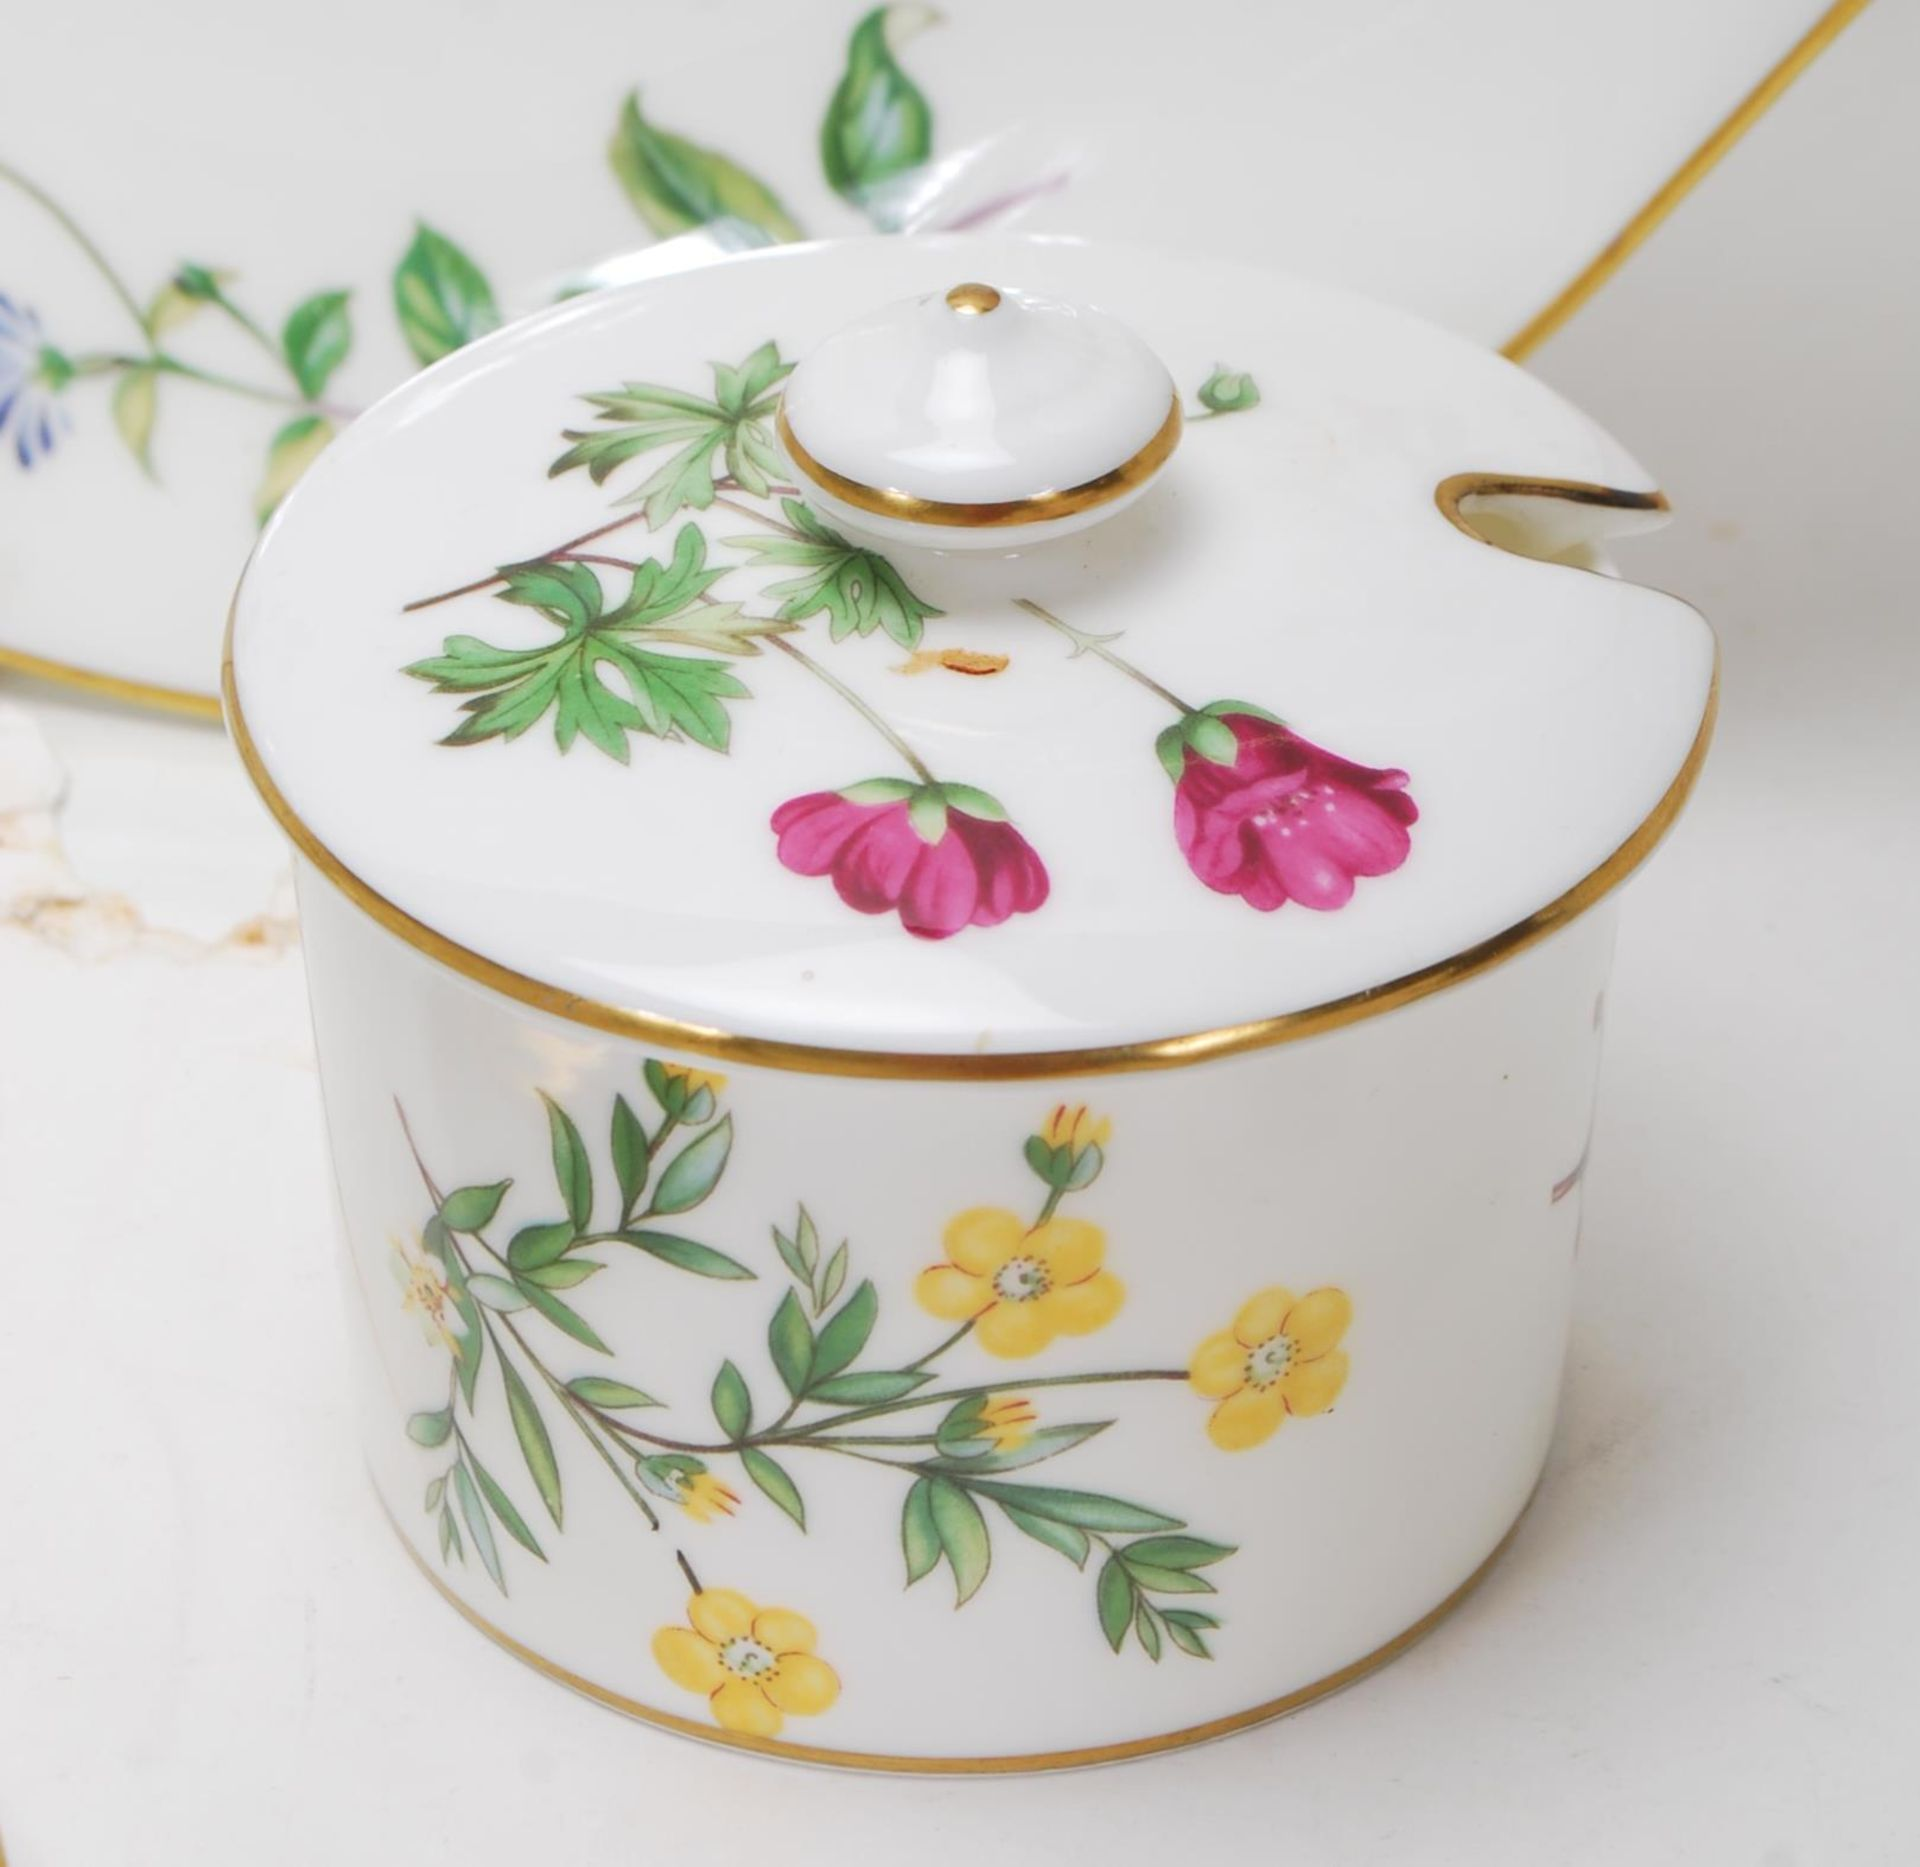 MINTON MEADOW PATTERN BONE CHINA TEA SERVICE - Image 7 of 12